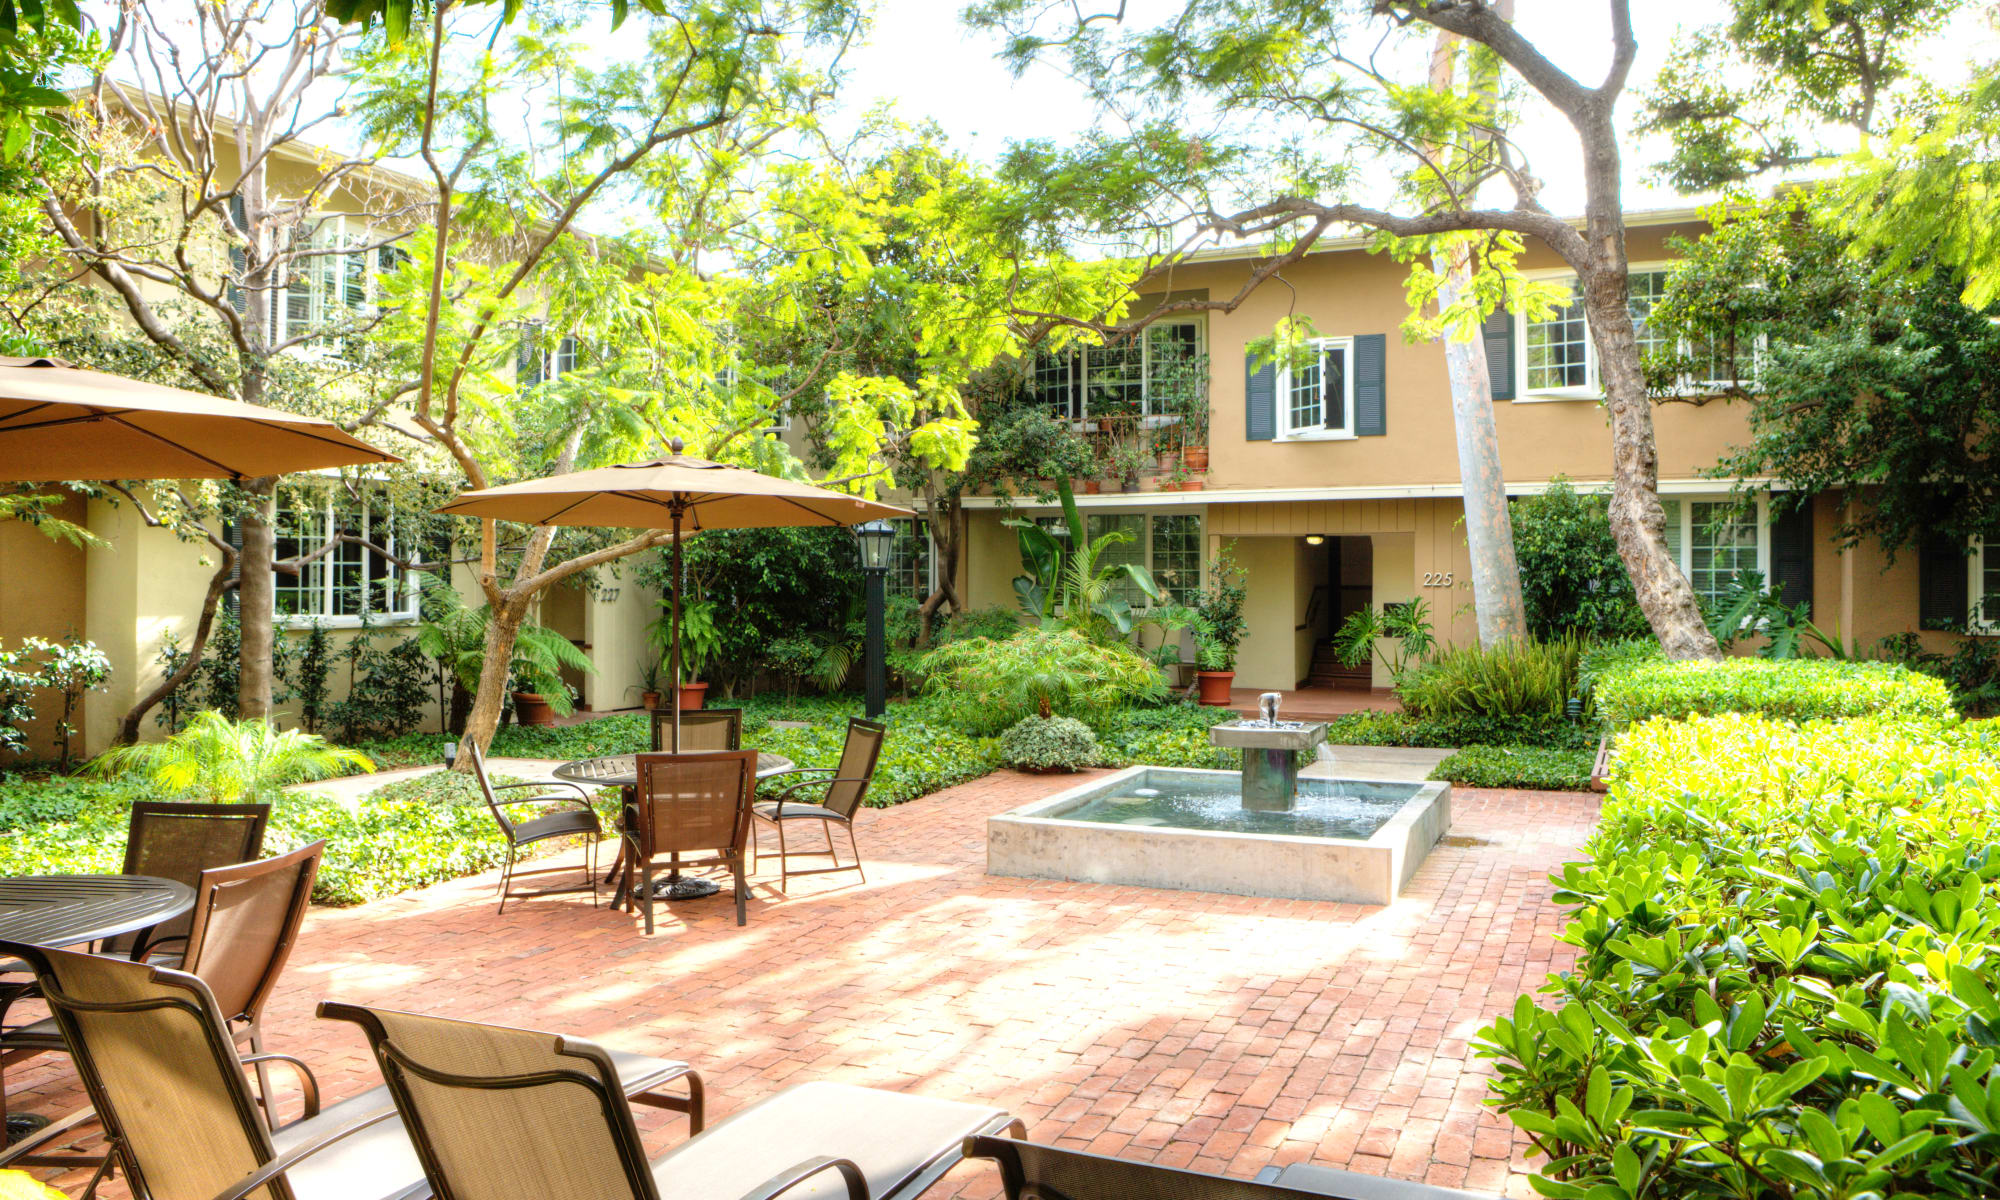 Beautiful courtyard with a fountain at West Park Village in Los Angeles, California